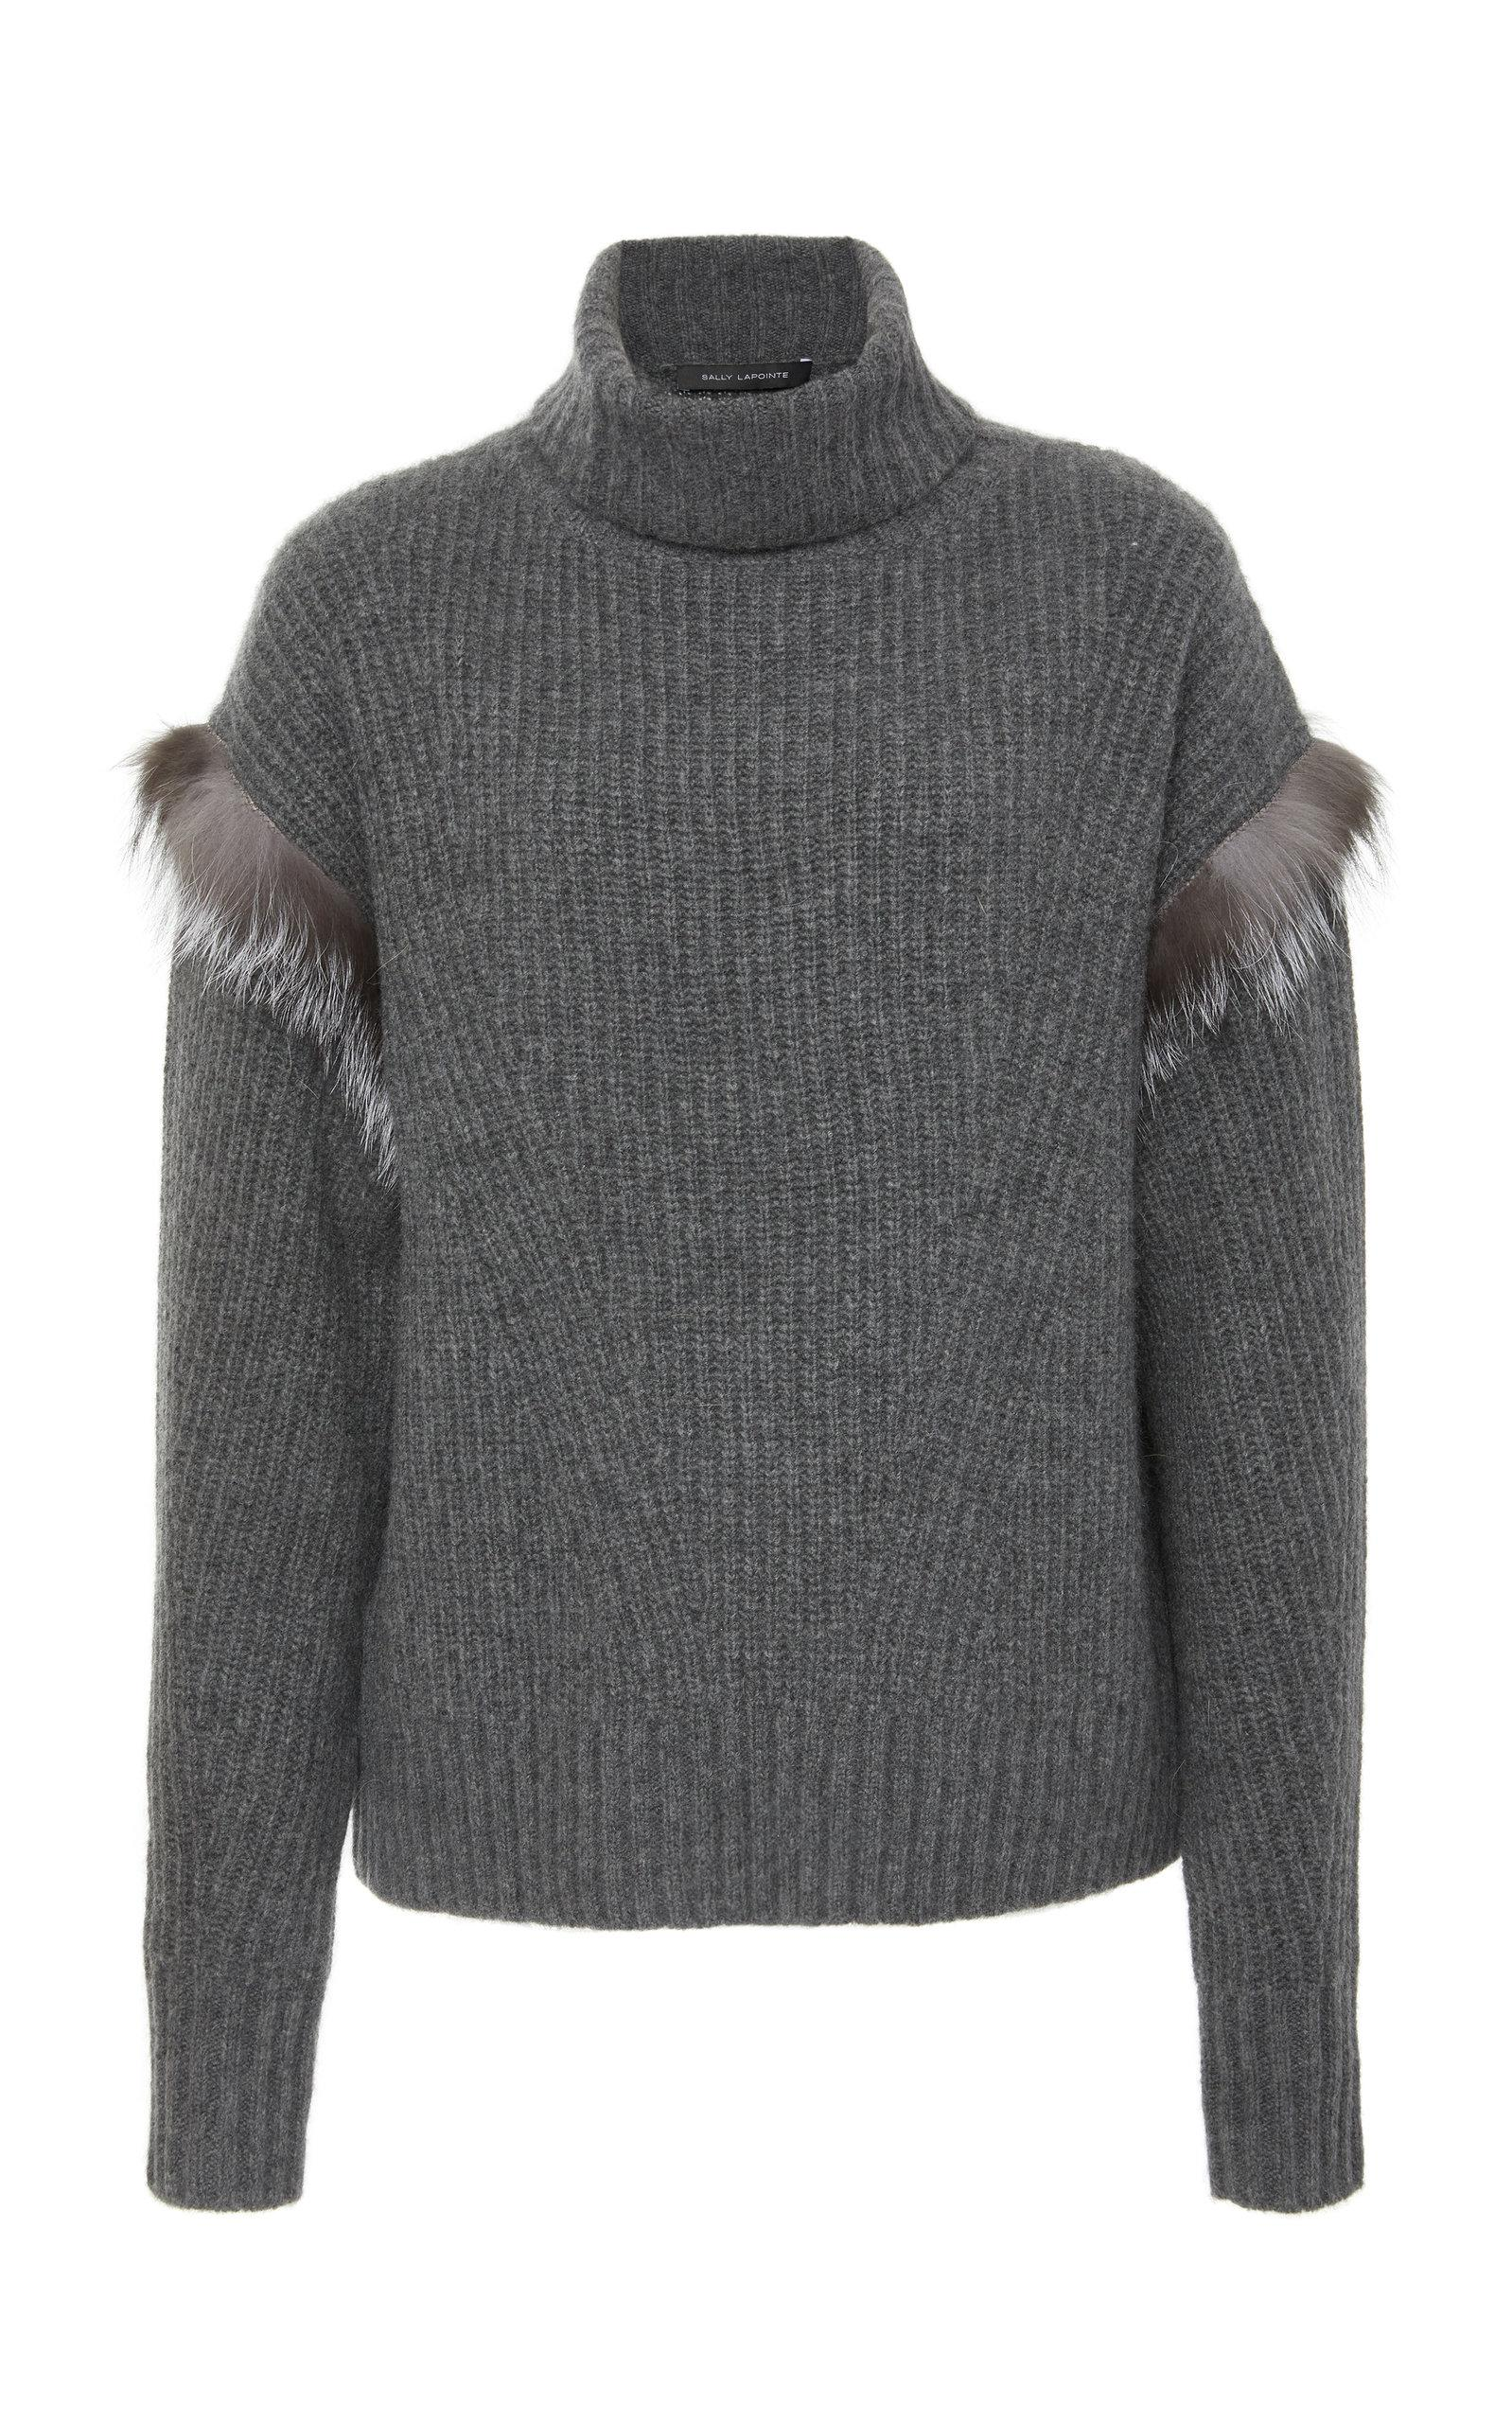 Sally Lapointe M'o Exclusive Cashmere View Fur Fullscreen Touch Lyst Of Sweater Gray FF1wqr